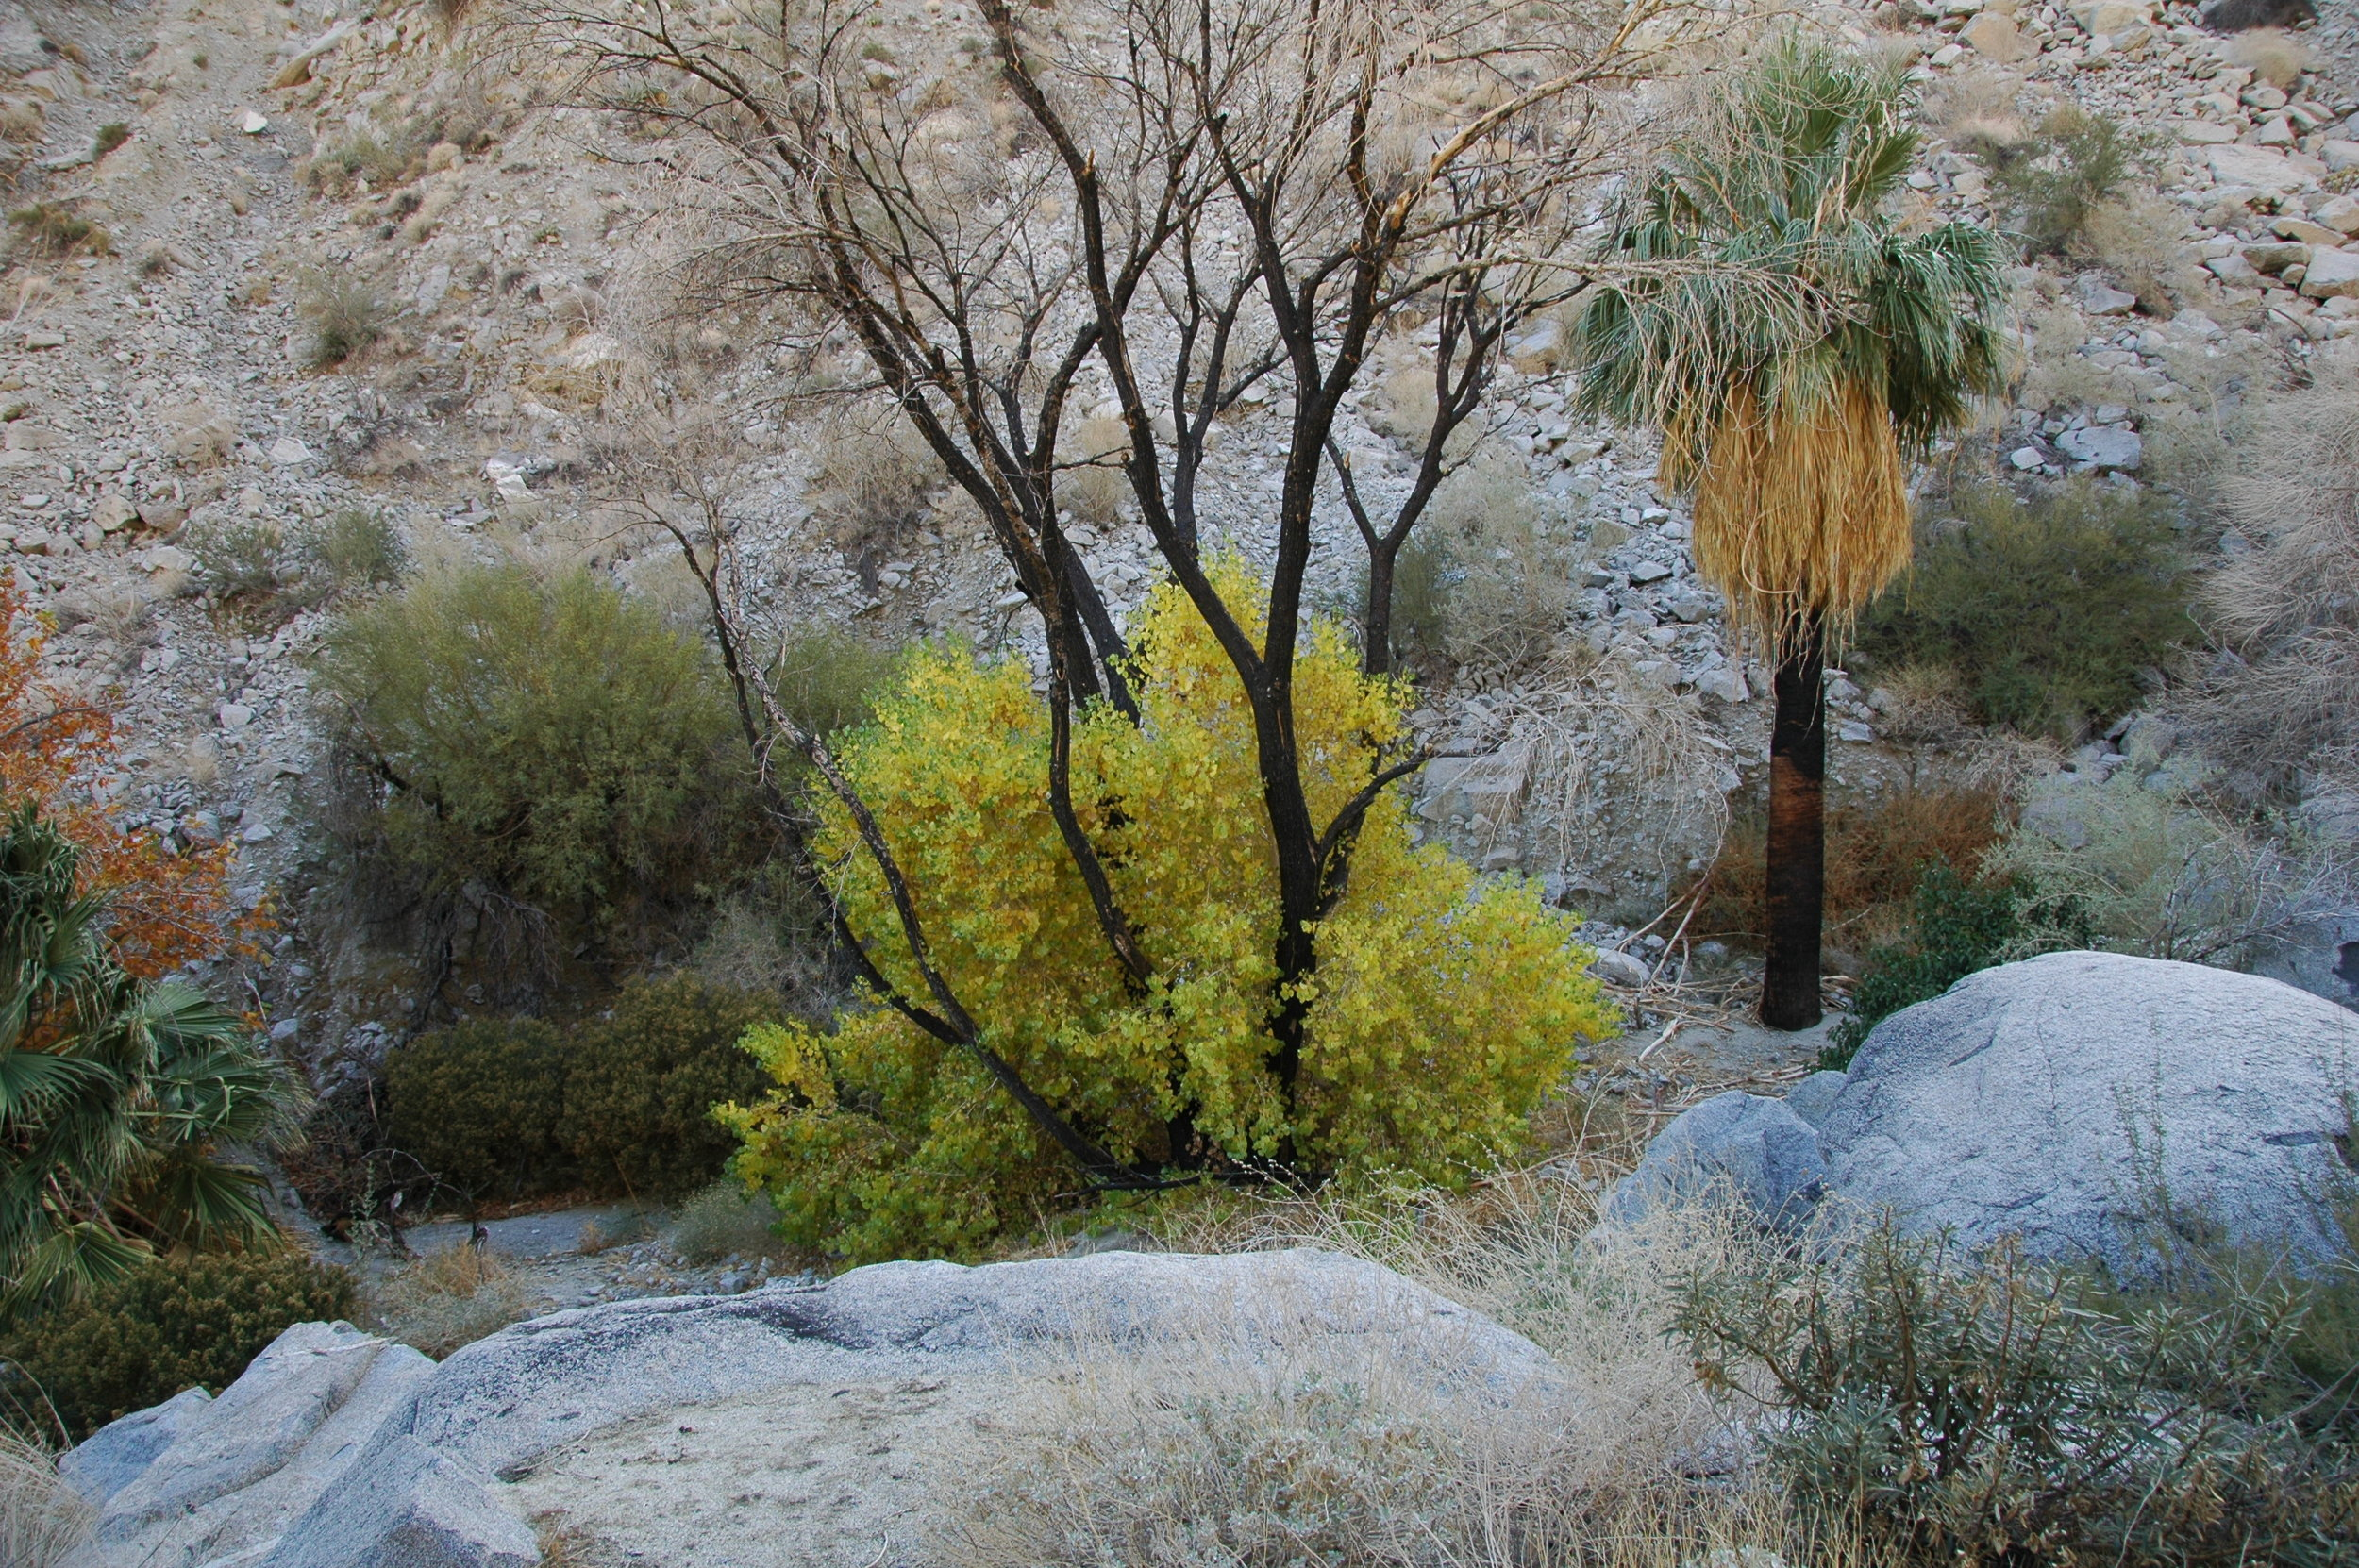 Palm Canyon, after the rains.